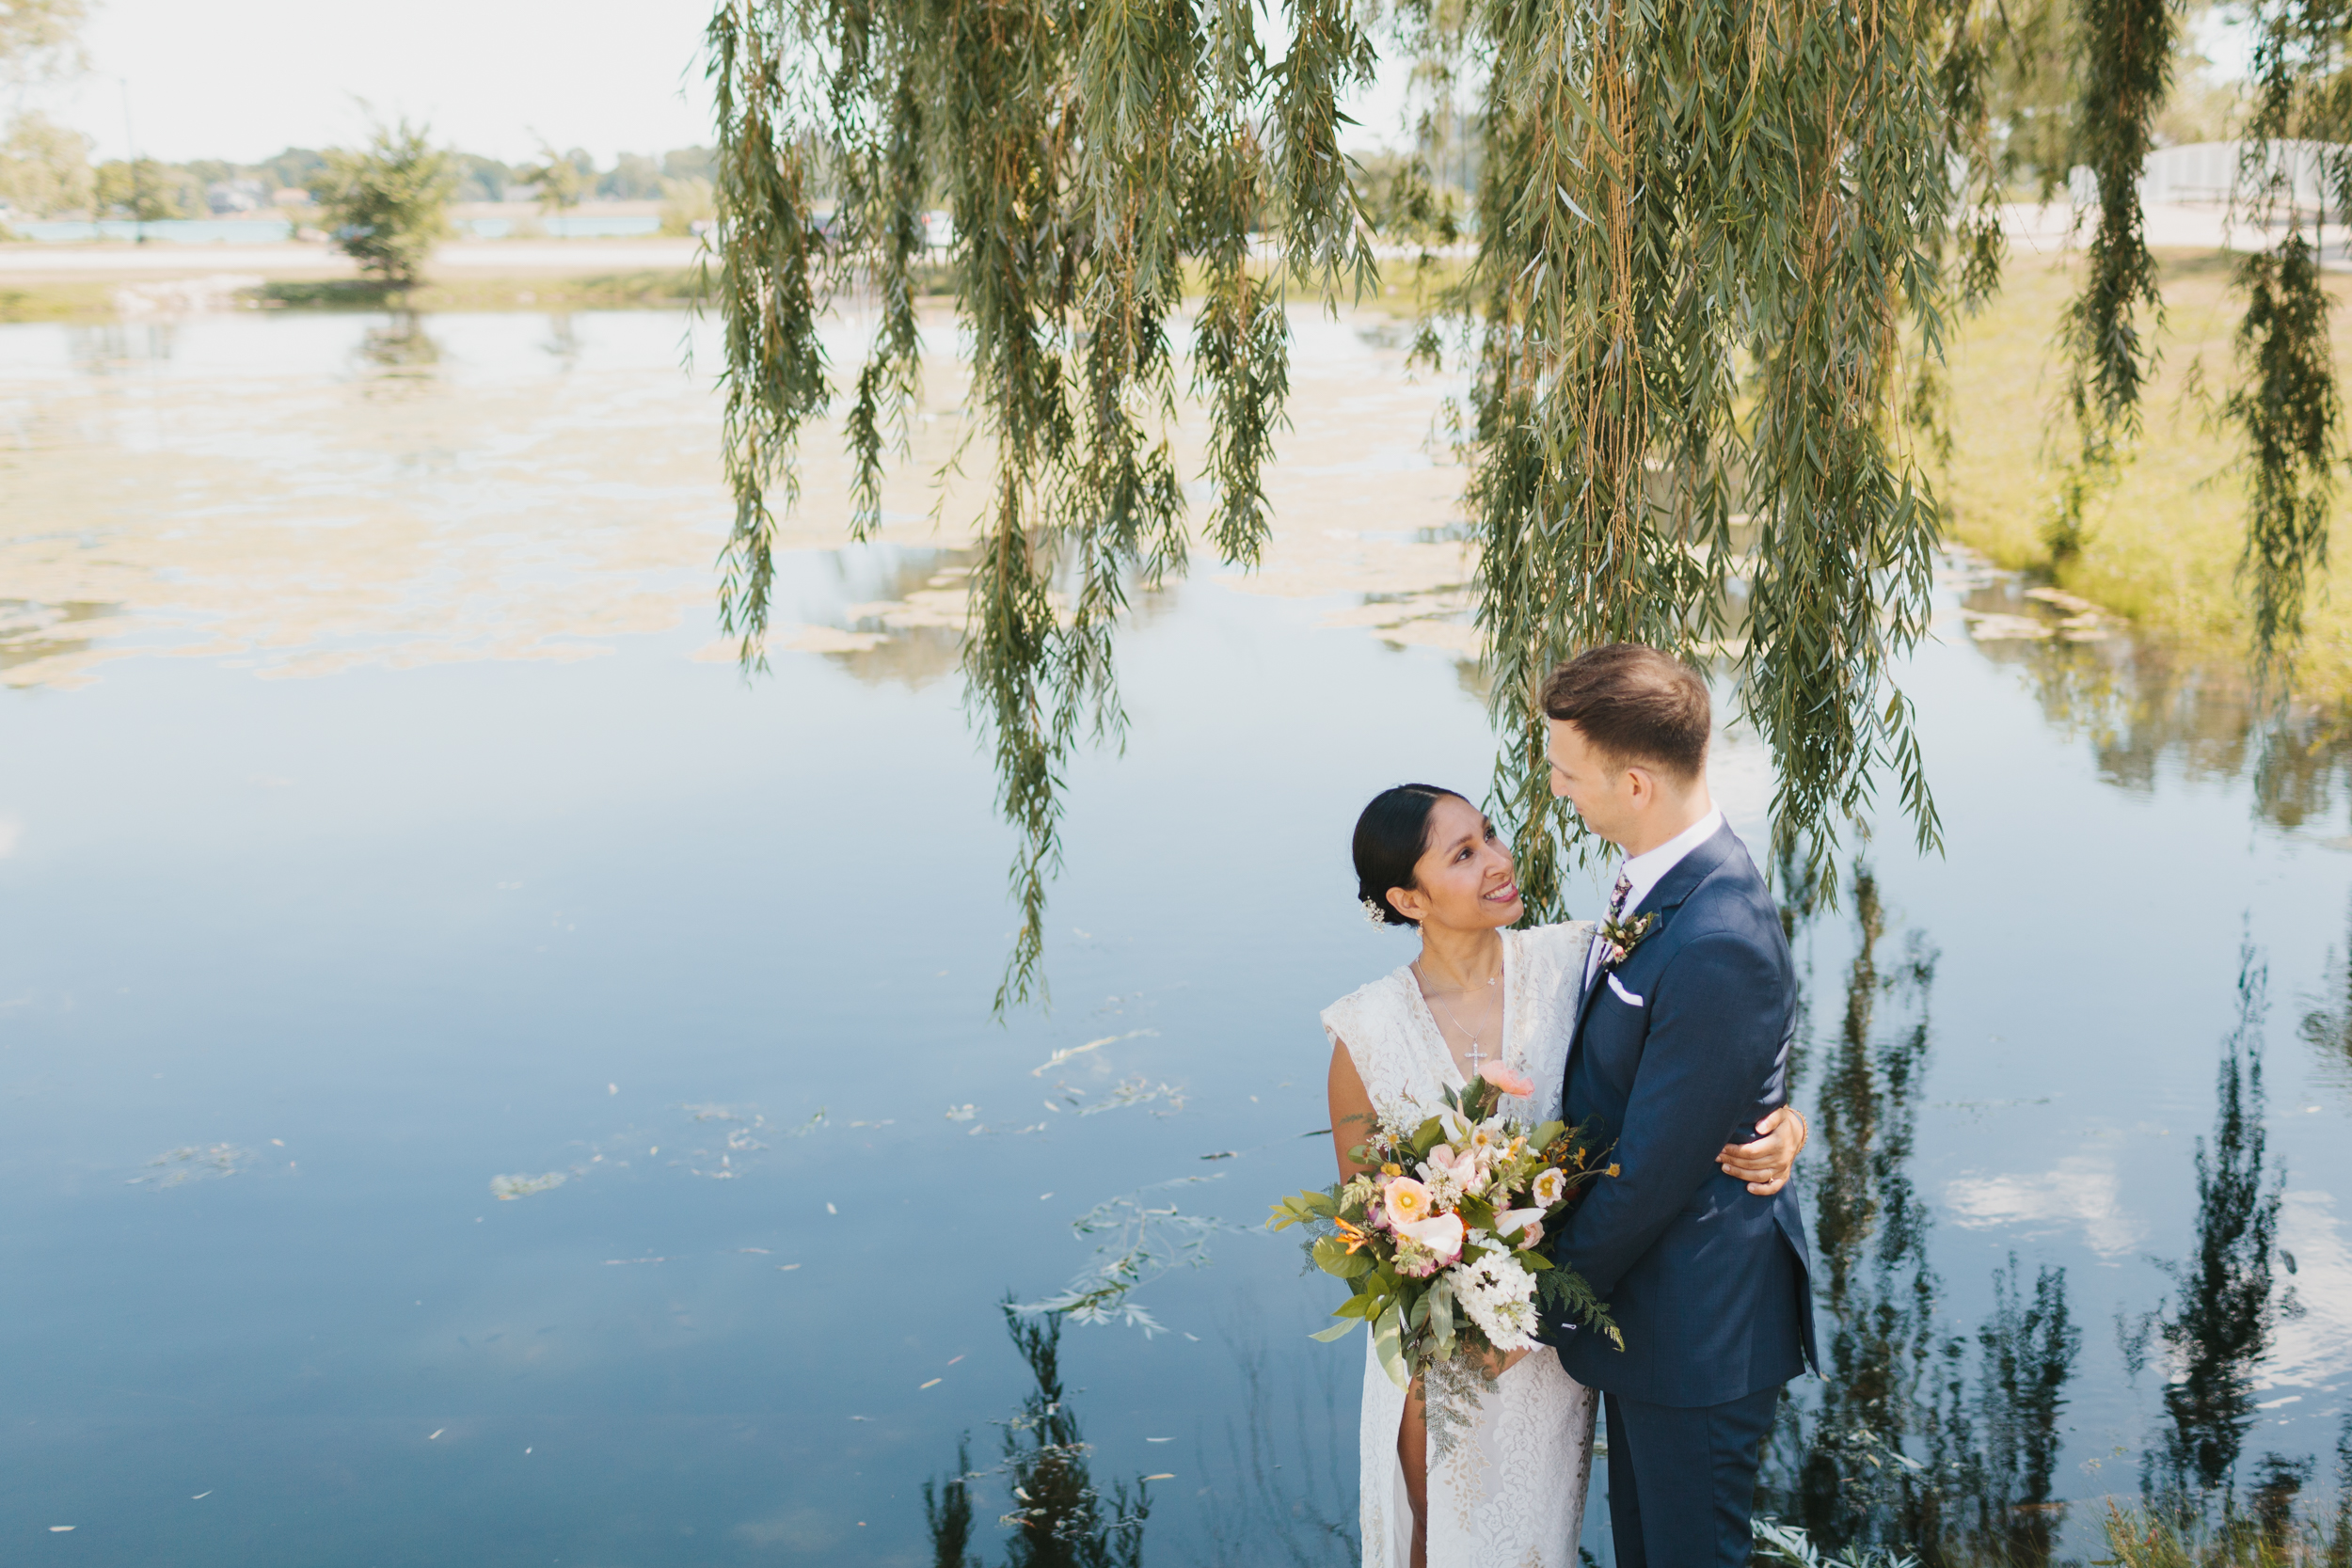 Detroit Lifestyle Wedding Photographer Mae Stier-018.jpg